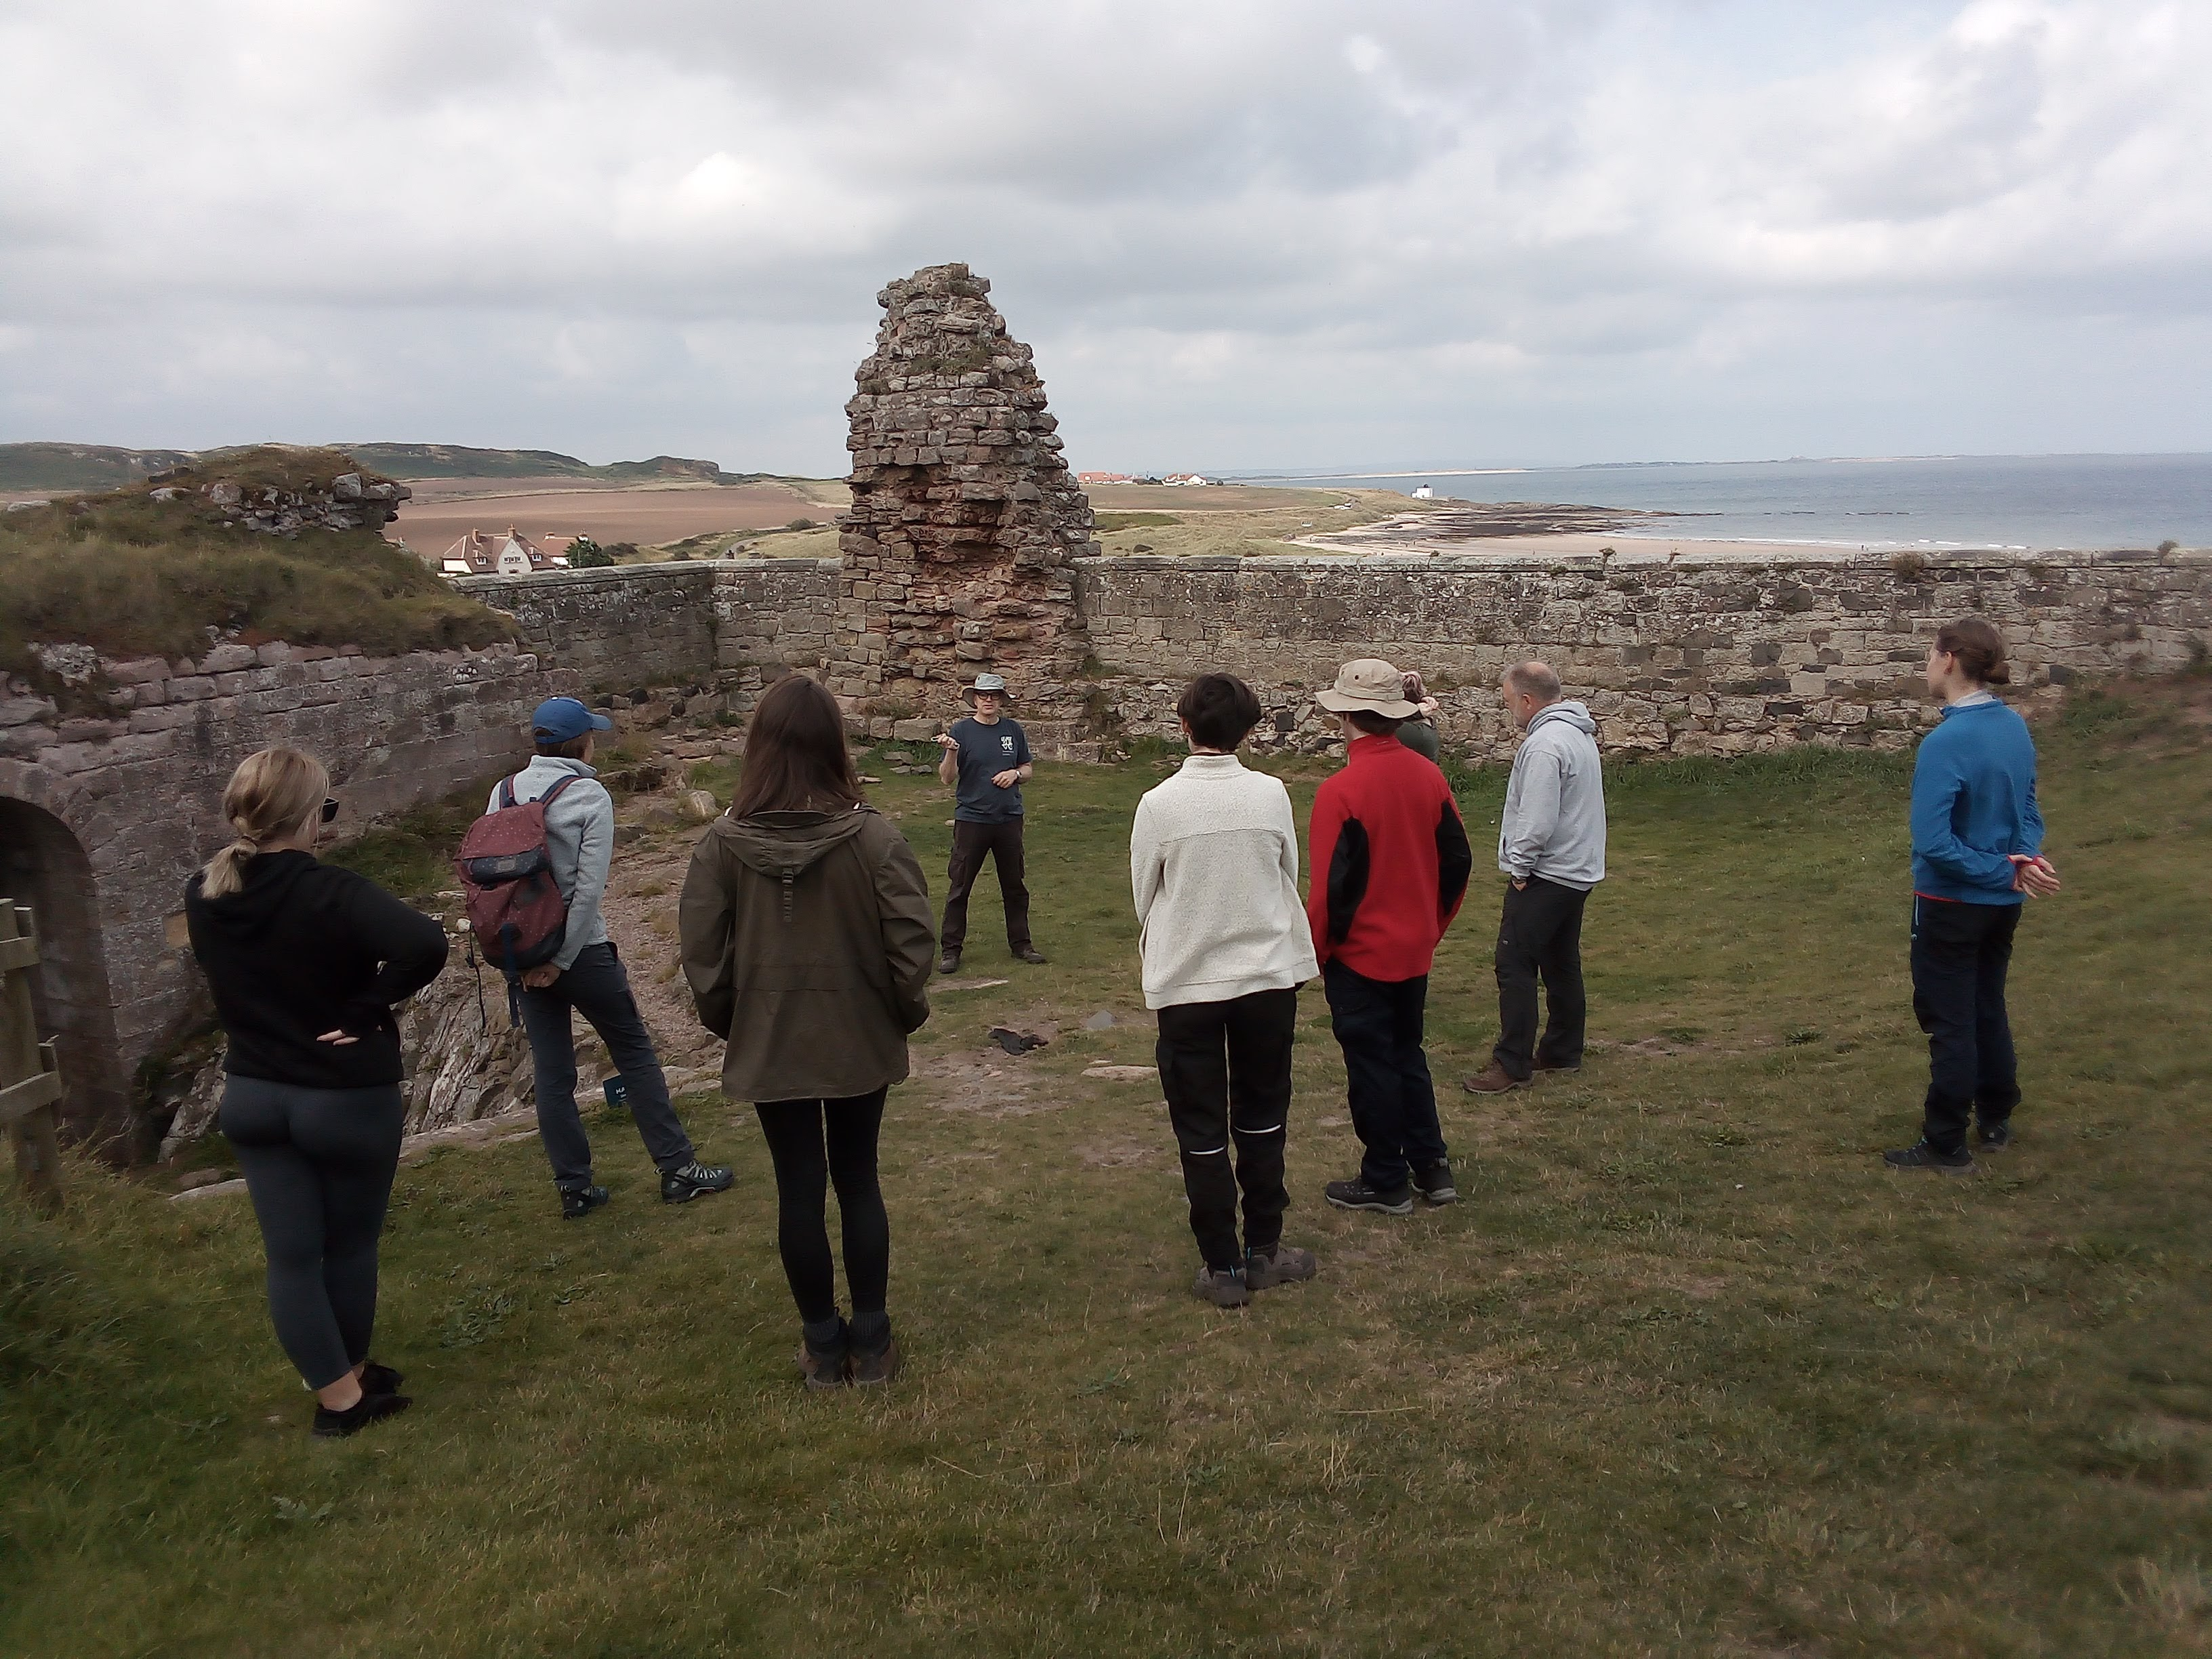 Students facing away from camera looking at co-director of the project in a bucket hat standing in front of an eroded bit of 12th-century masonry with the beach and North Sea in the background.